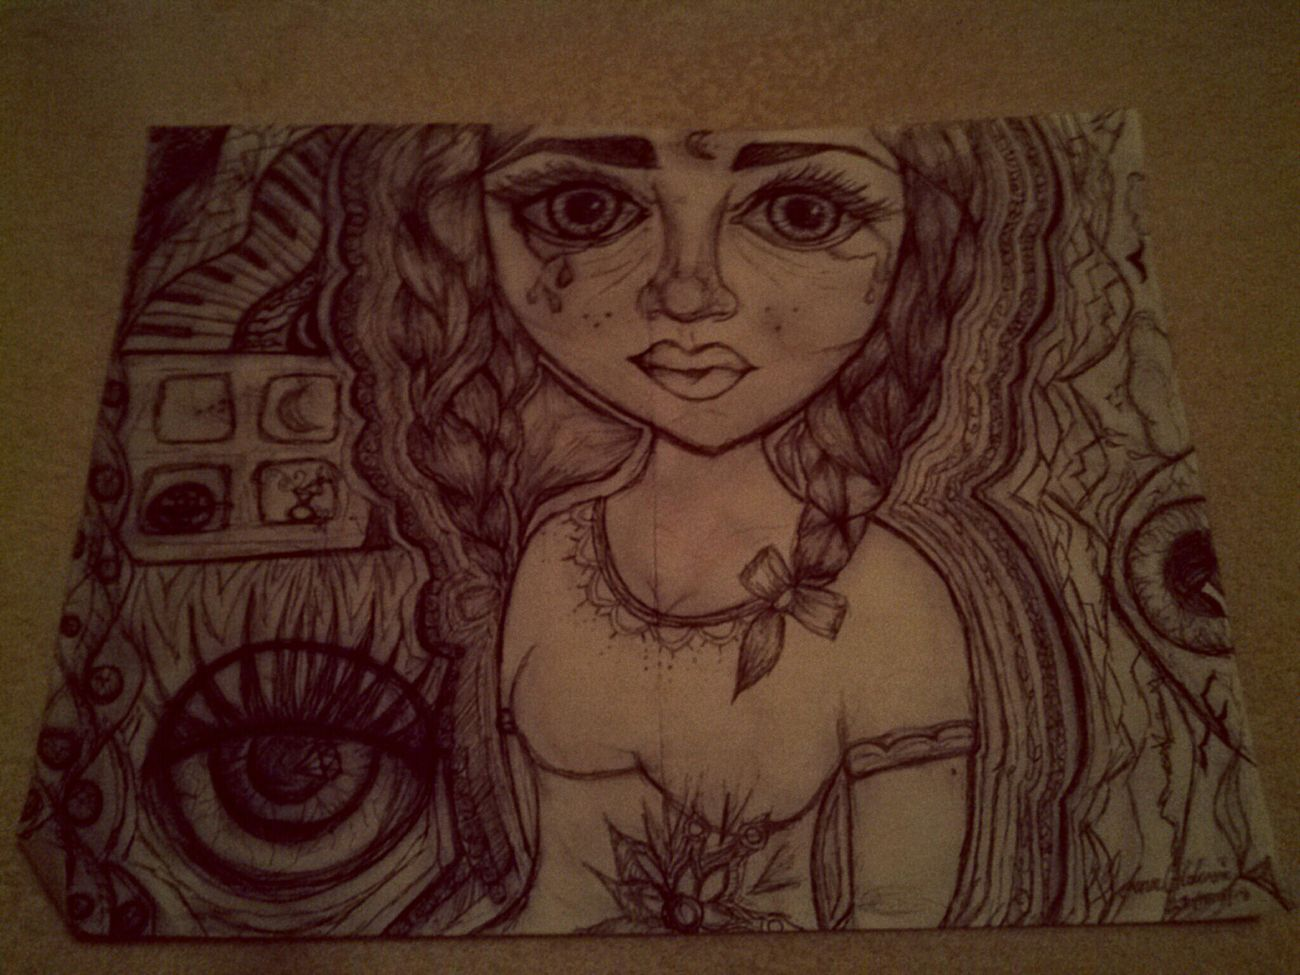 MyDrawing Boredatschool BigEyesDolls Bigeyes Braids Eyes Eyedrawing Thickeyebrows Girlcrying Luna a tres cuadras.♥